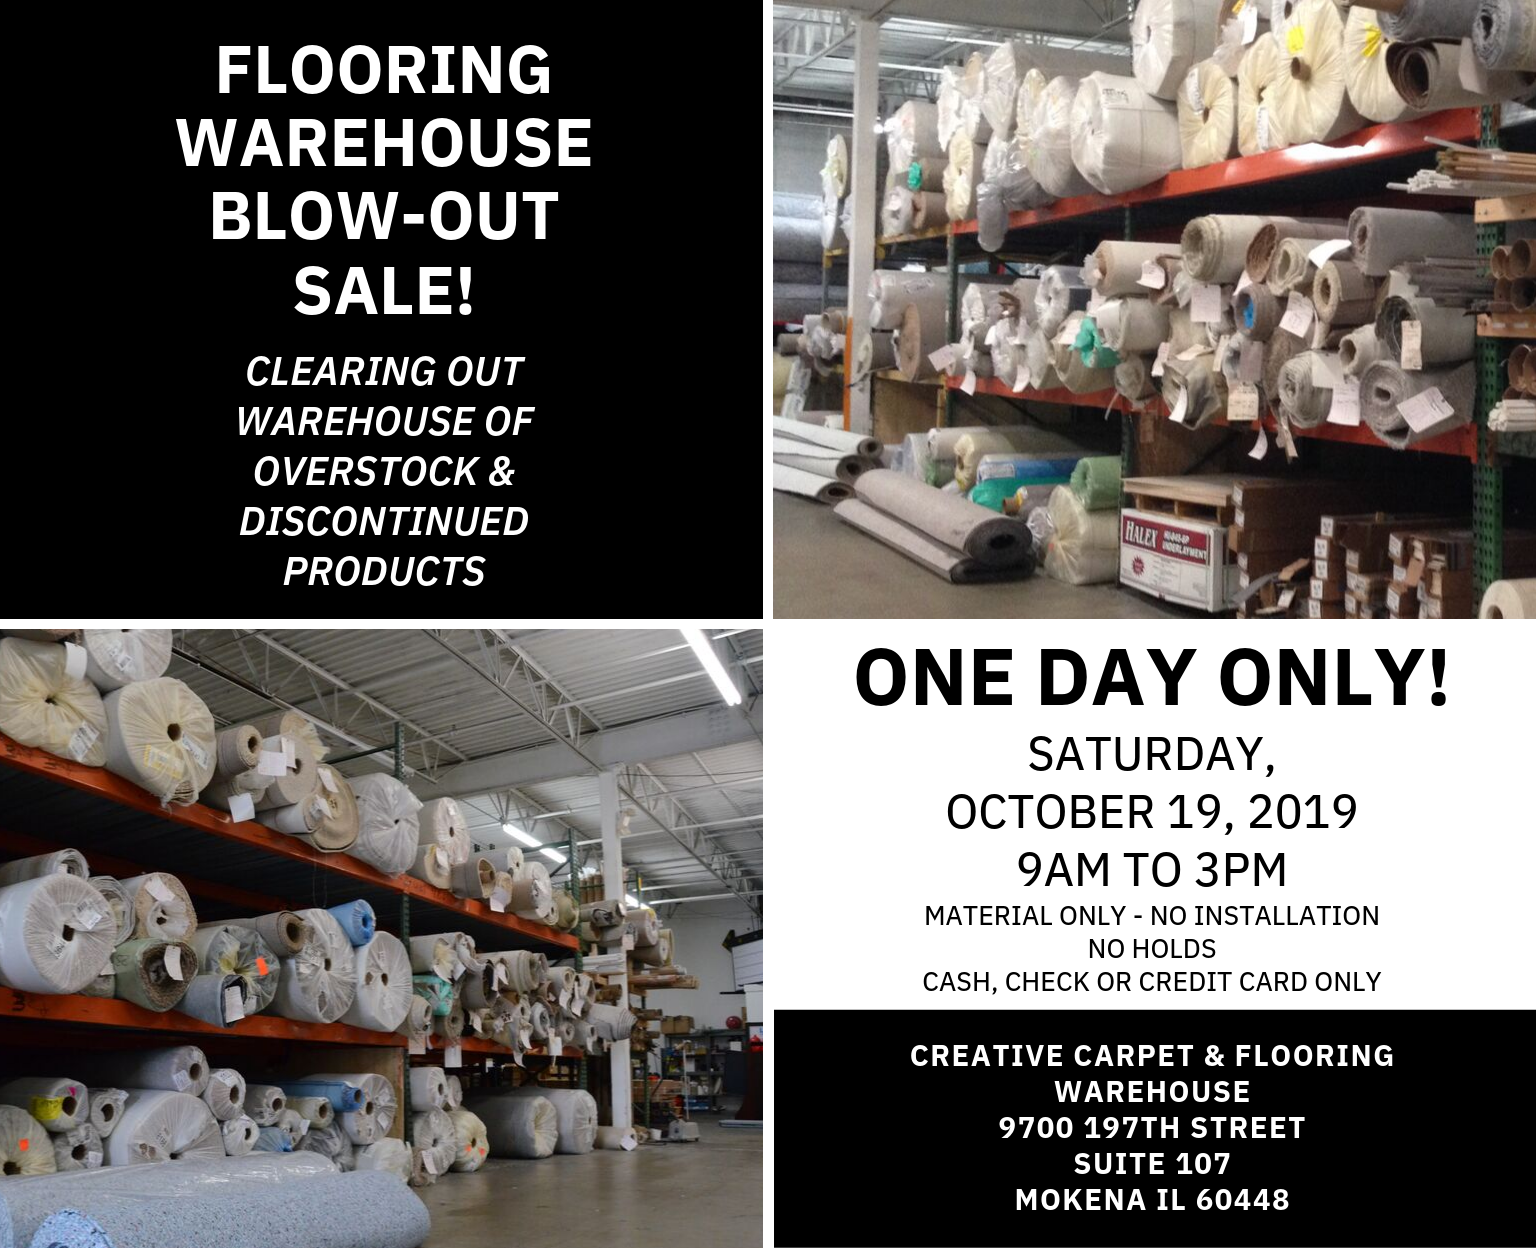 flooring warehouse blow-out sale